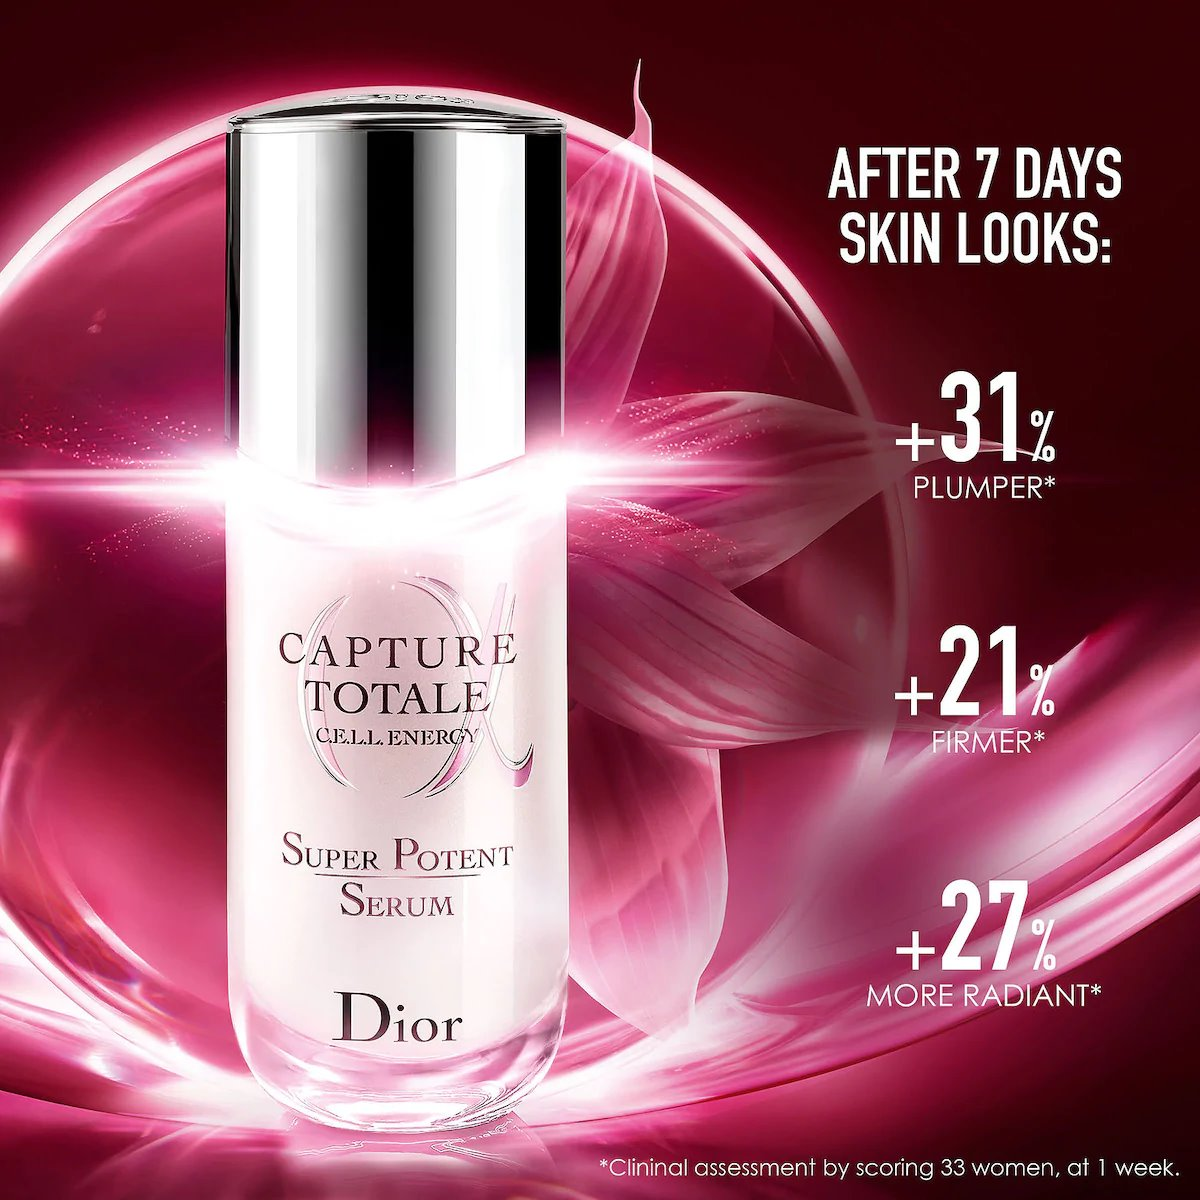 Dior Capture Totale Super Potent Age-Defying Intense Serum